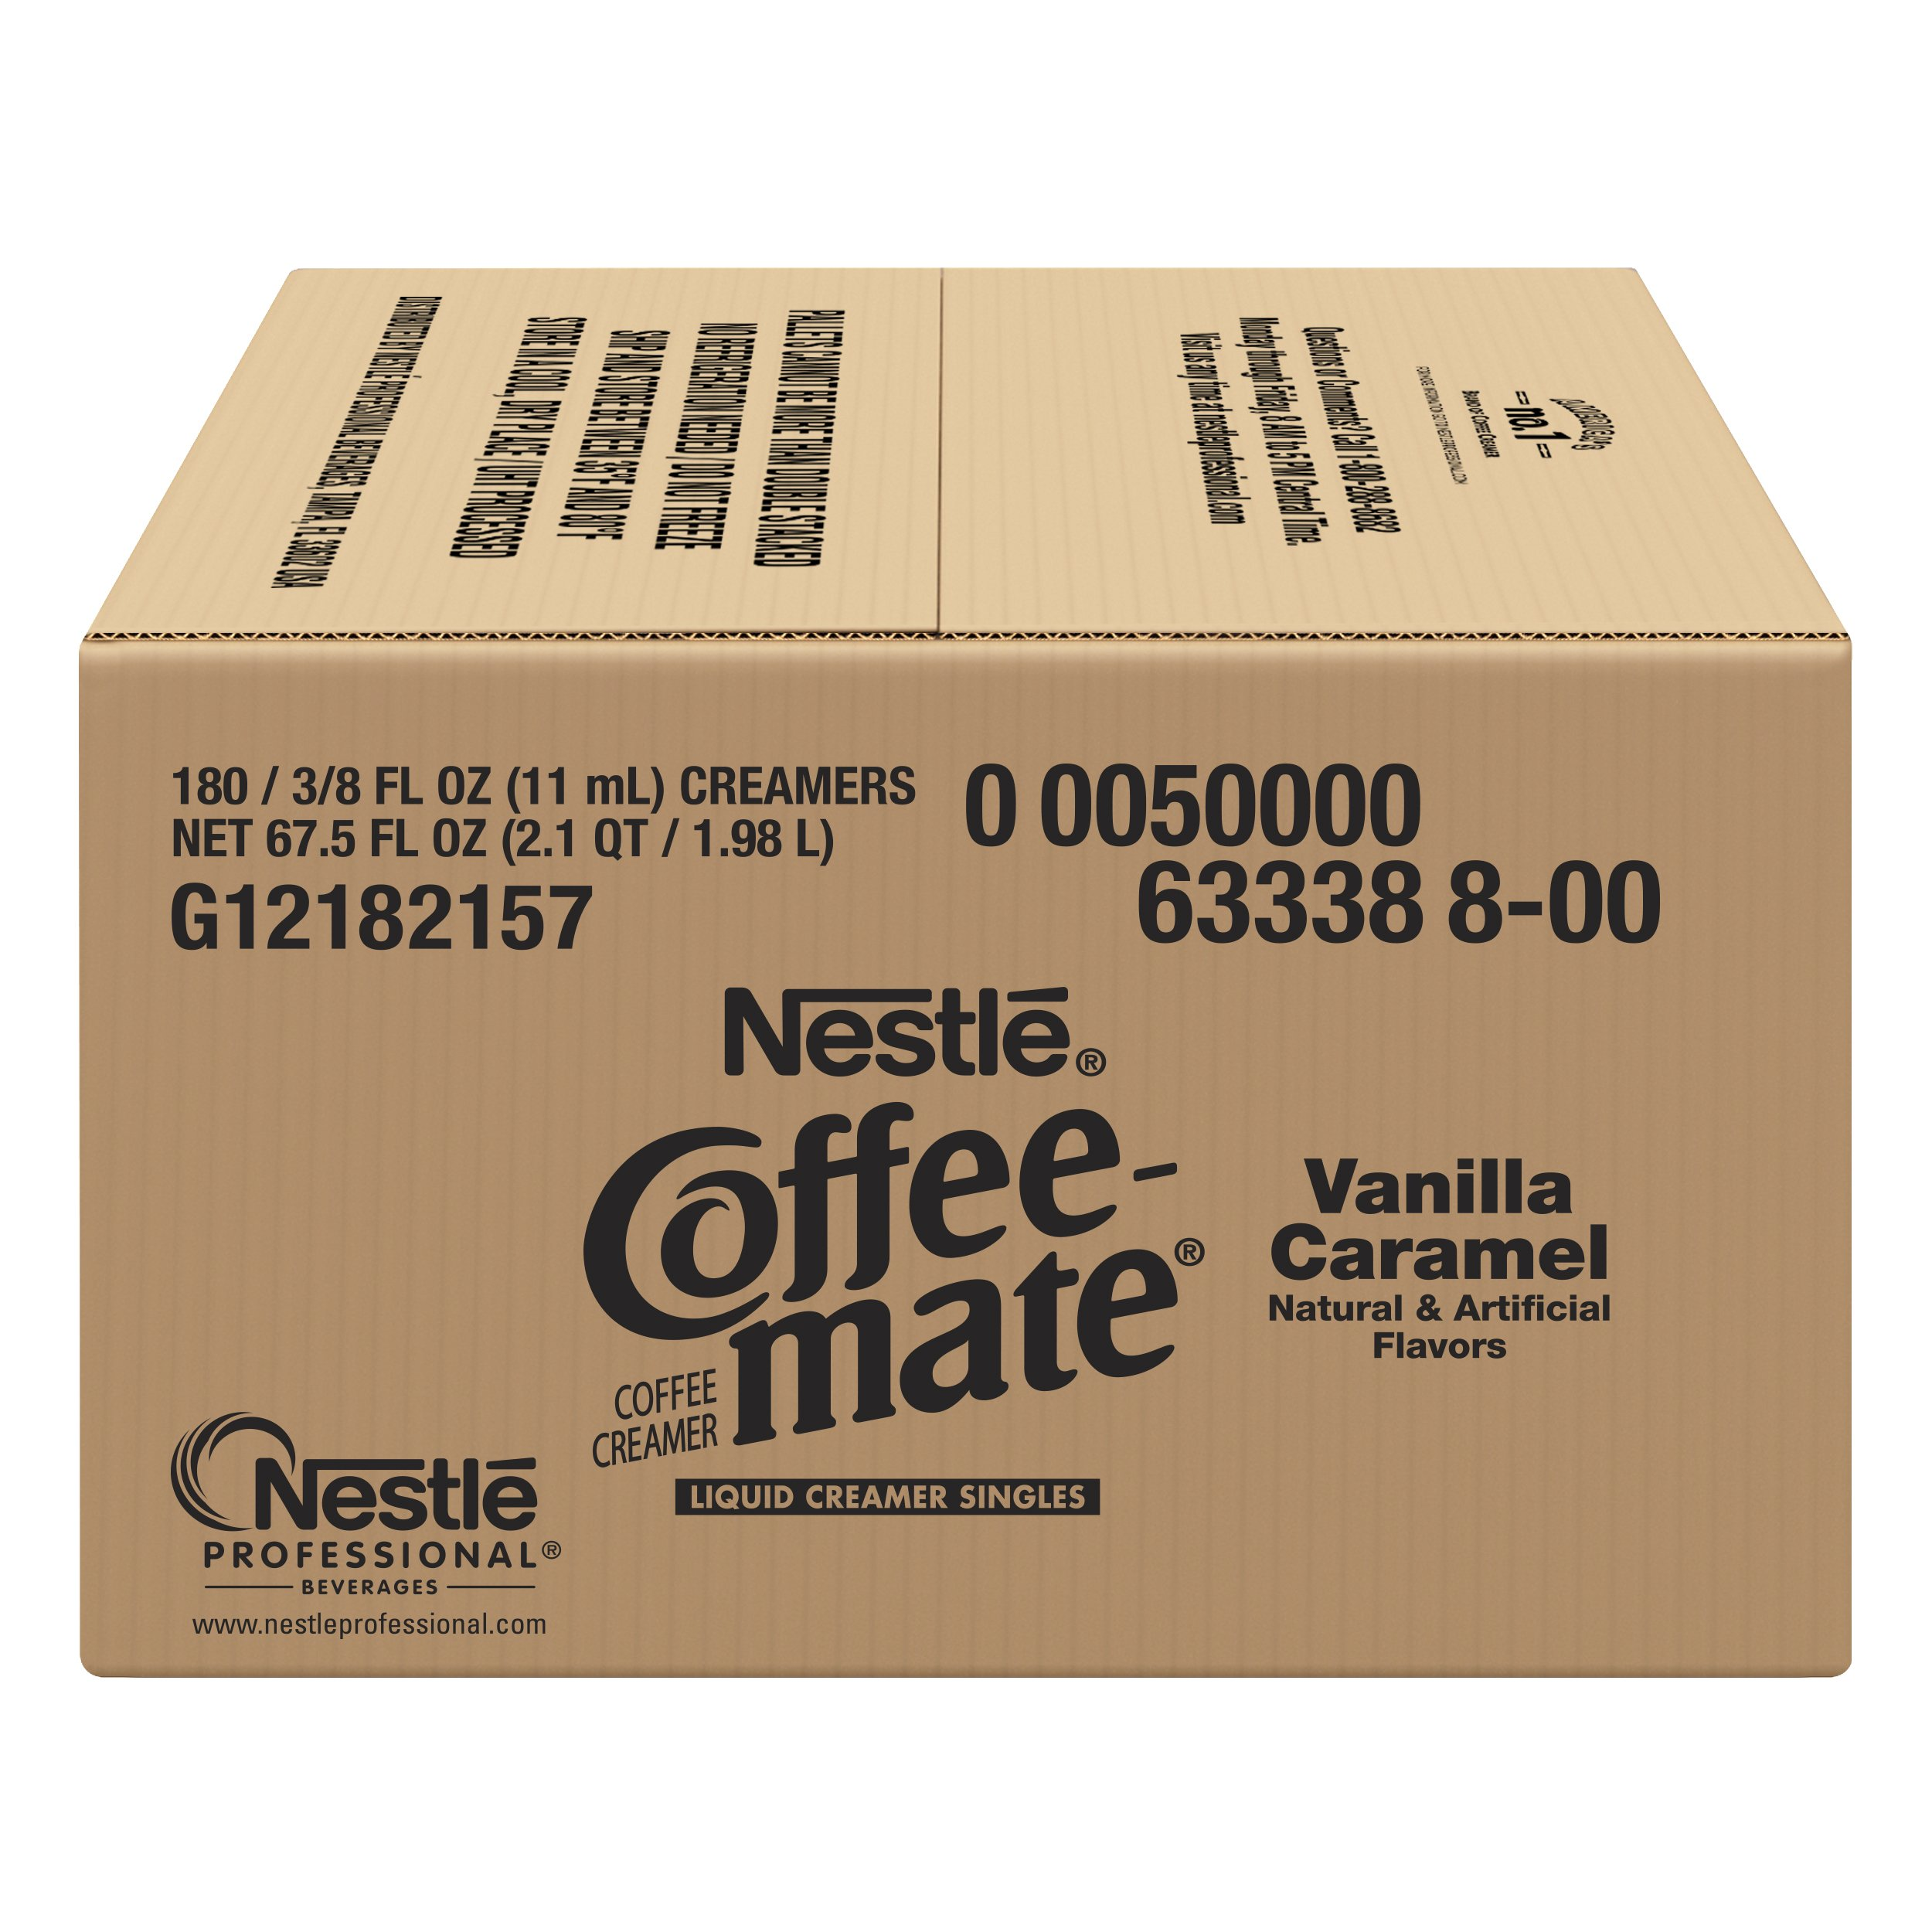 NESTLE COFFEE-MATE Coffee Creamer, Vanilla Caramel, liquid creamer singles, 180 Count (Pack of 1) by Nestle Coffee Mate (Image #4)